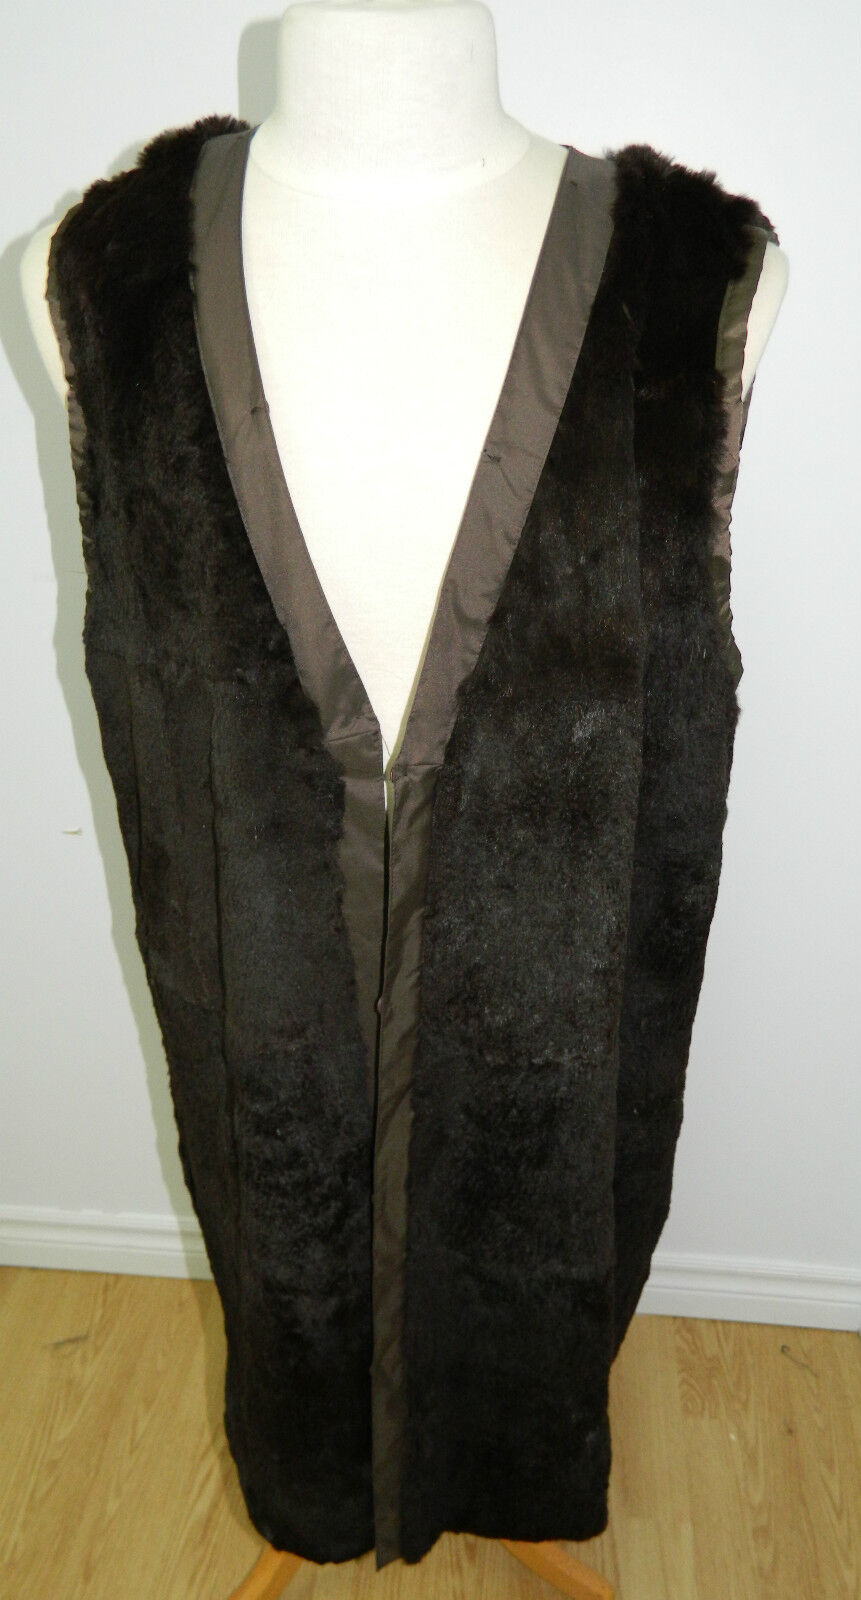 DARK BROWN SHEARED RABBIT FUR VEST INSIDE COAT LENGTH LENGTH LENGTH 39''  Sz.L      nE31 1df982